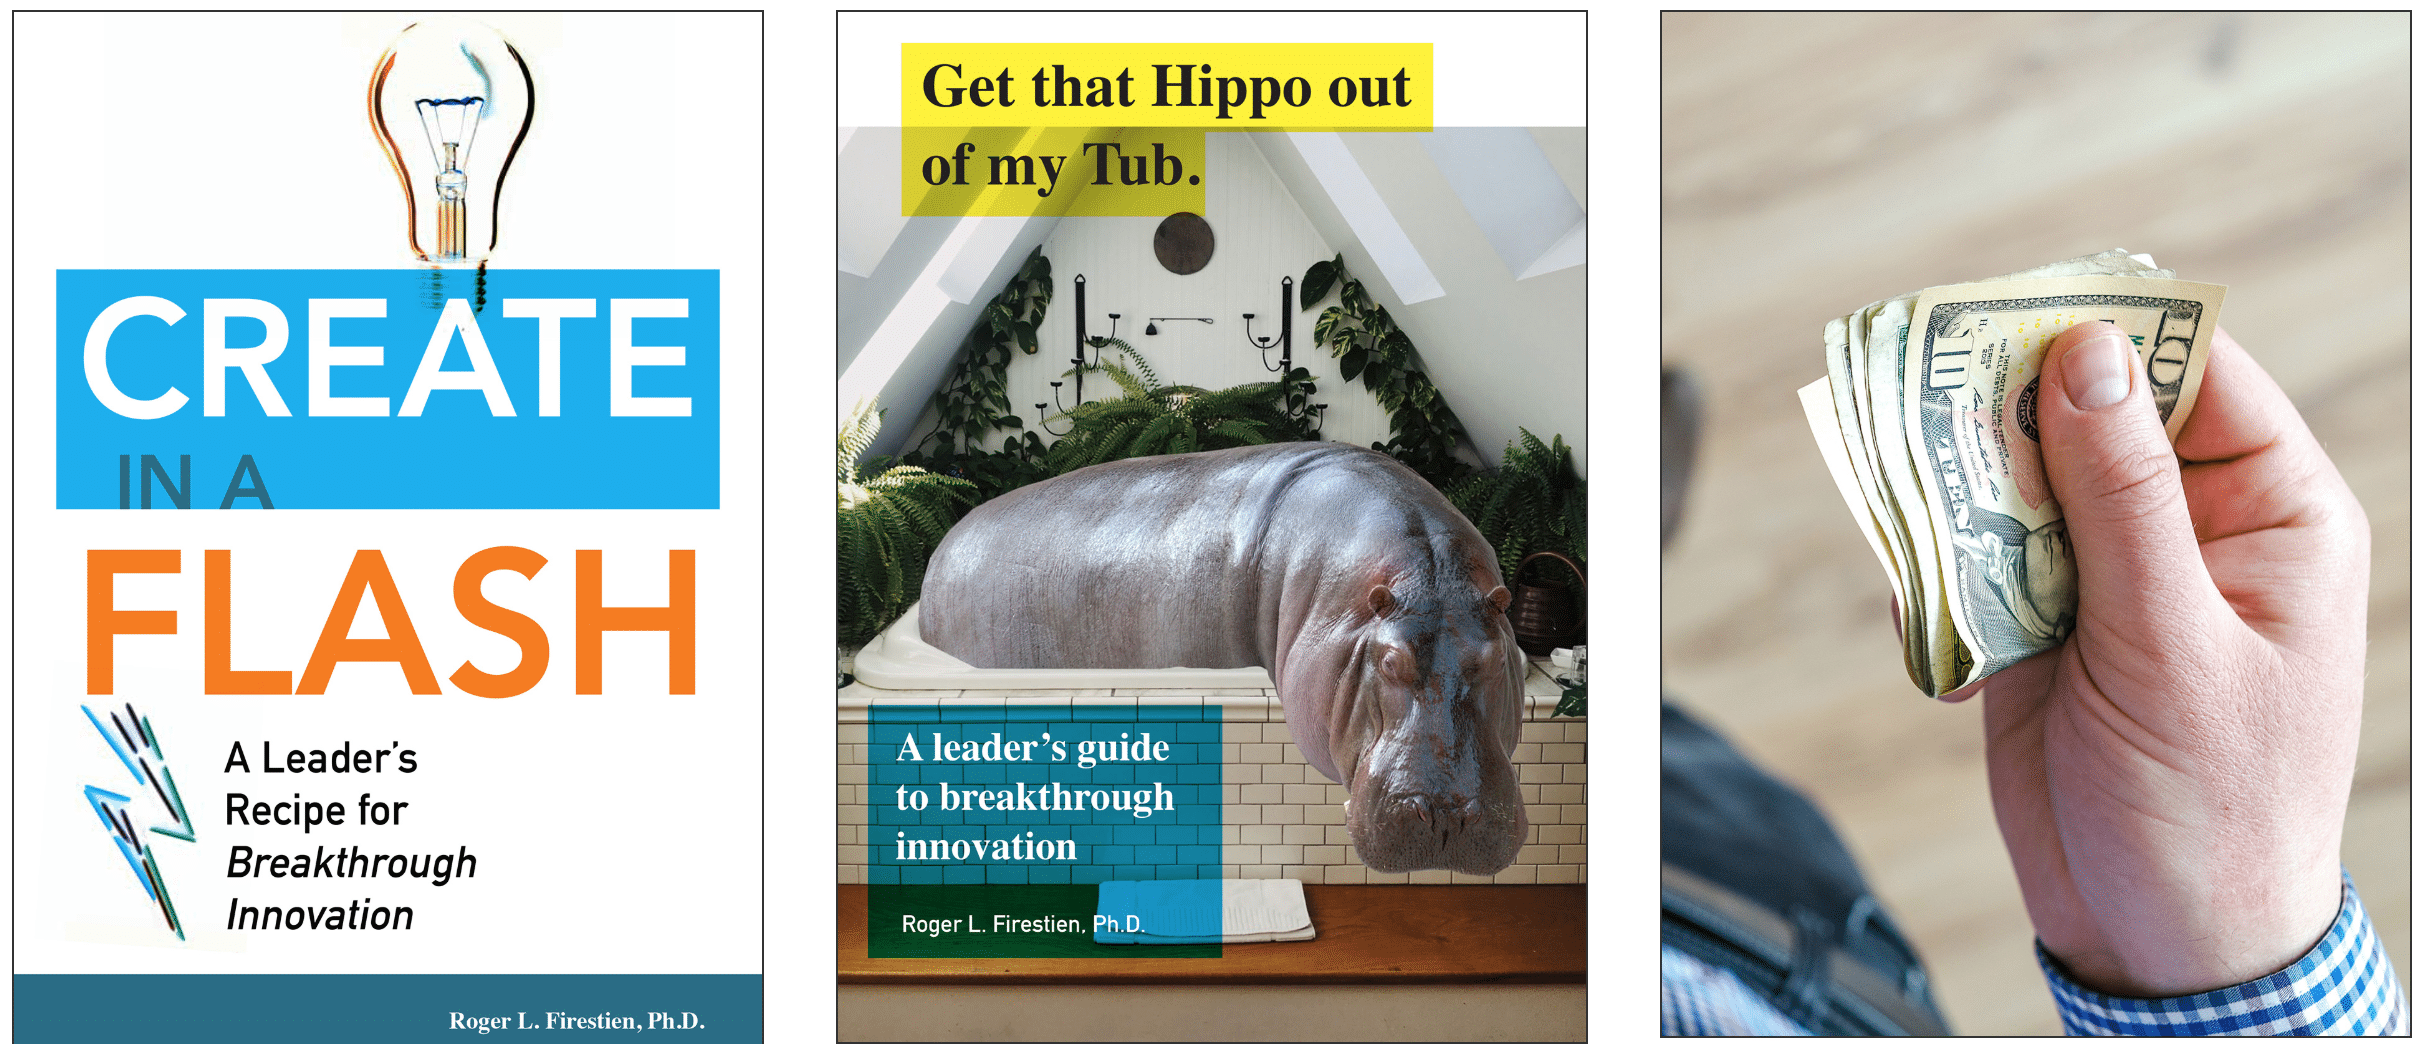 A Hippo, A Lightbulb or One Hundred Dollars